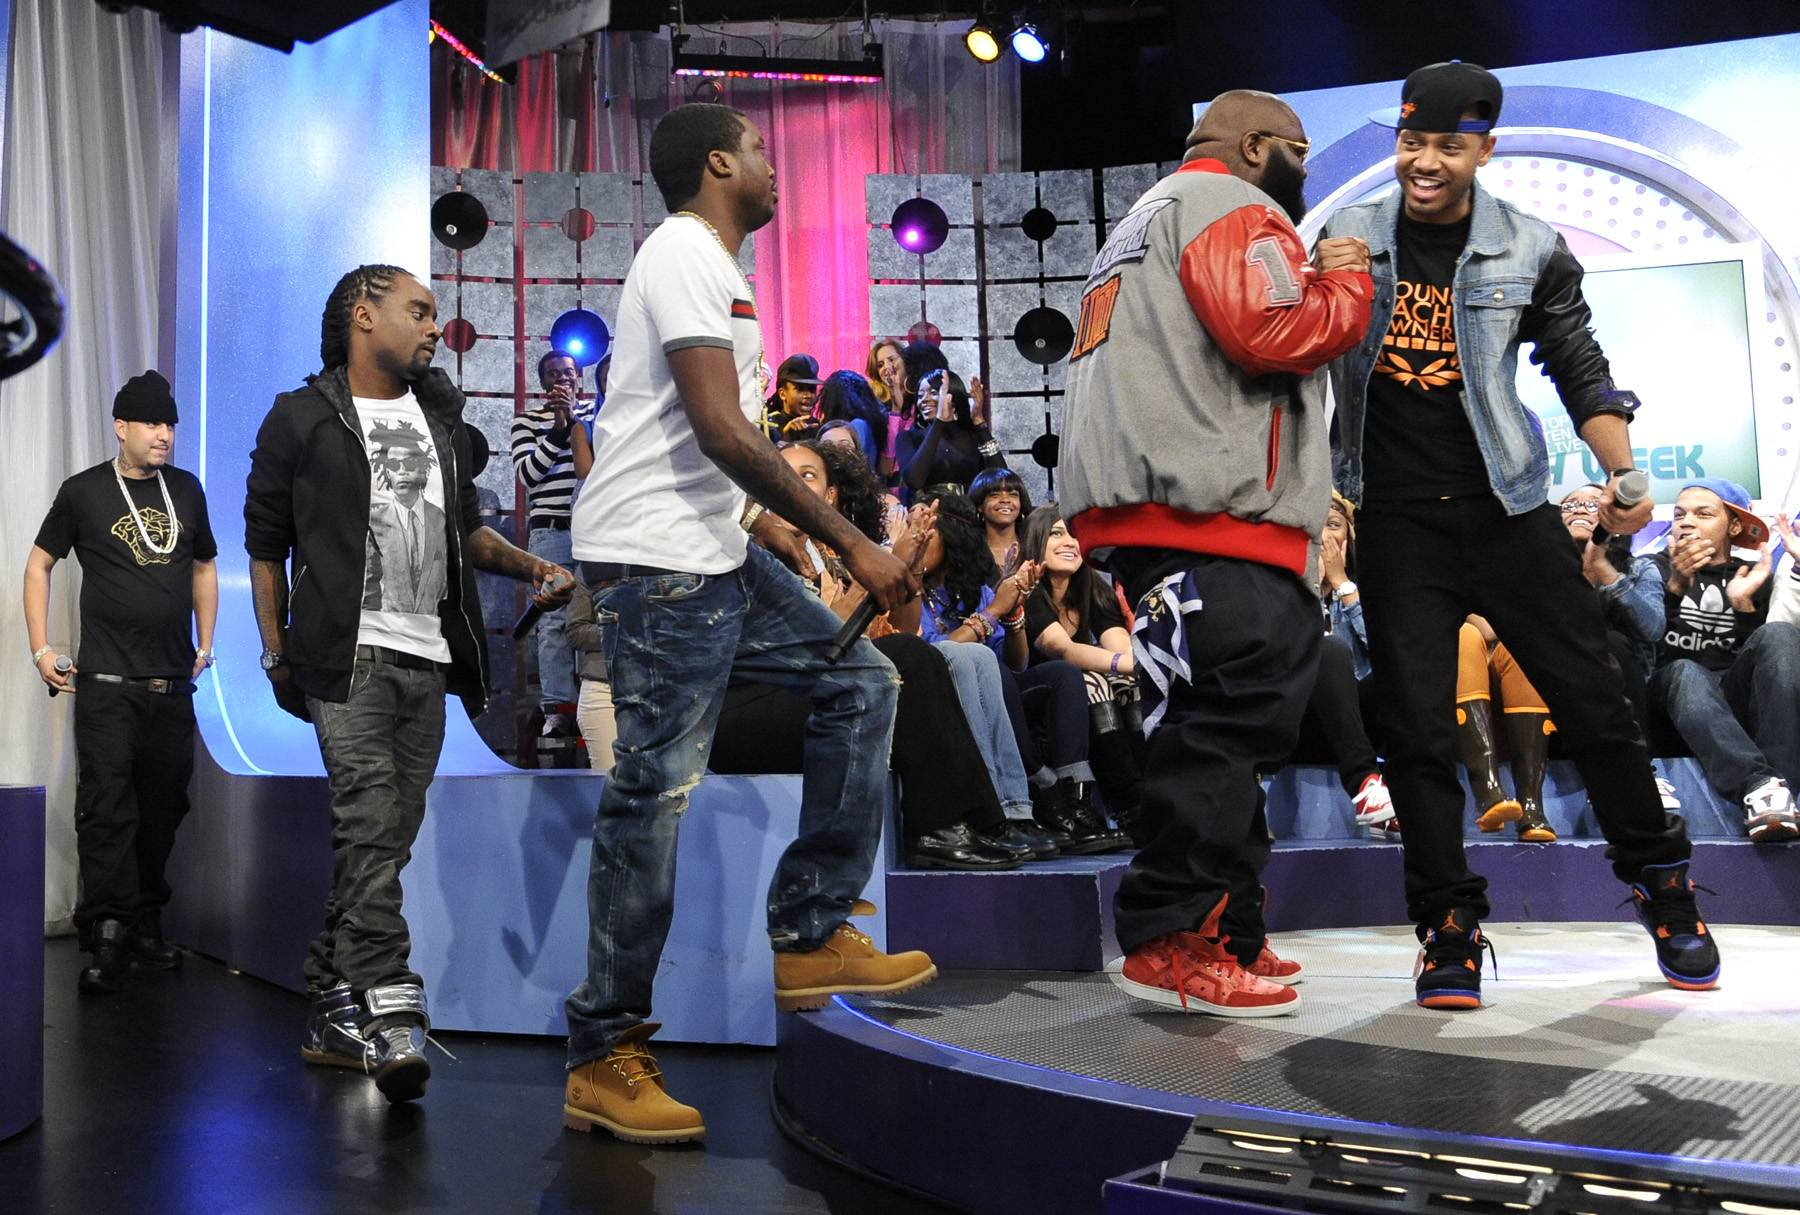 Step Right Up - MMG takes the stage at 106 & Park, May 2, 2012. (Photo: John Ricard/BET)